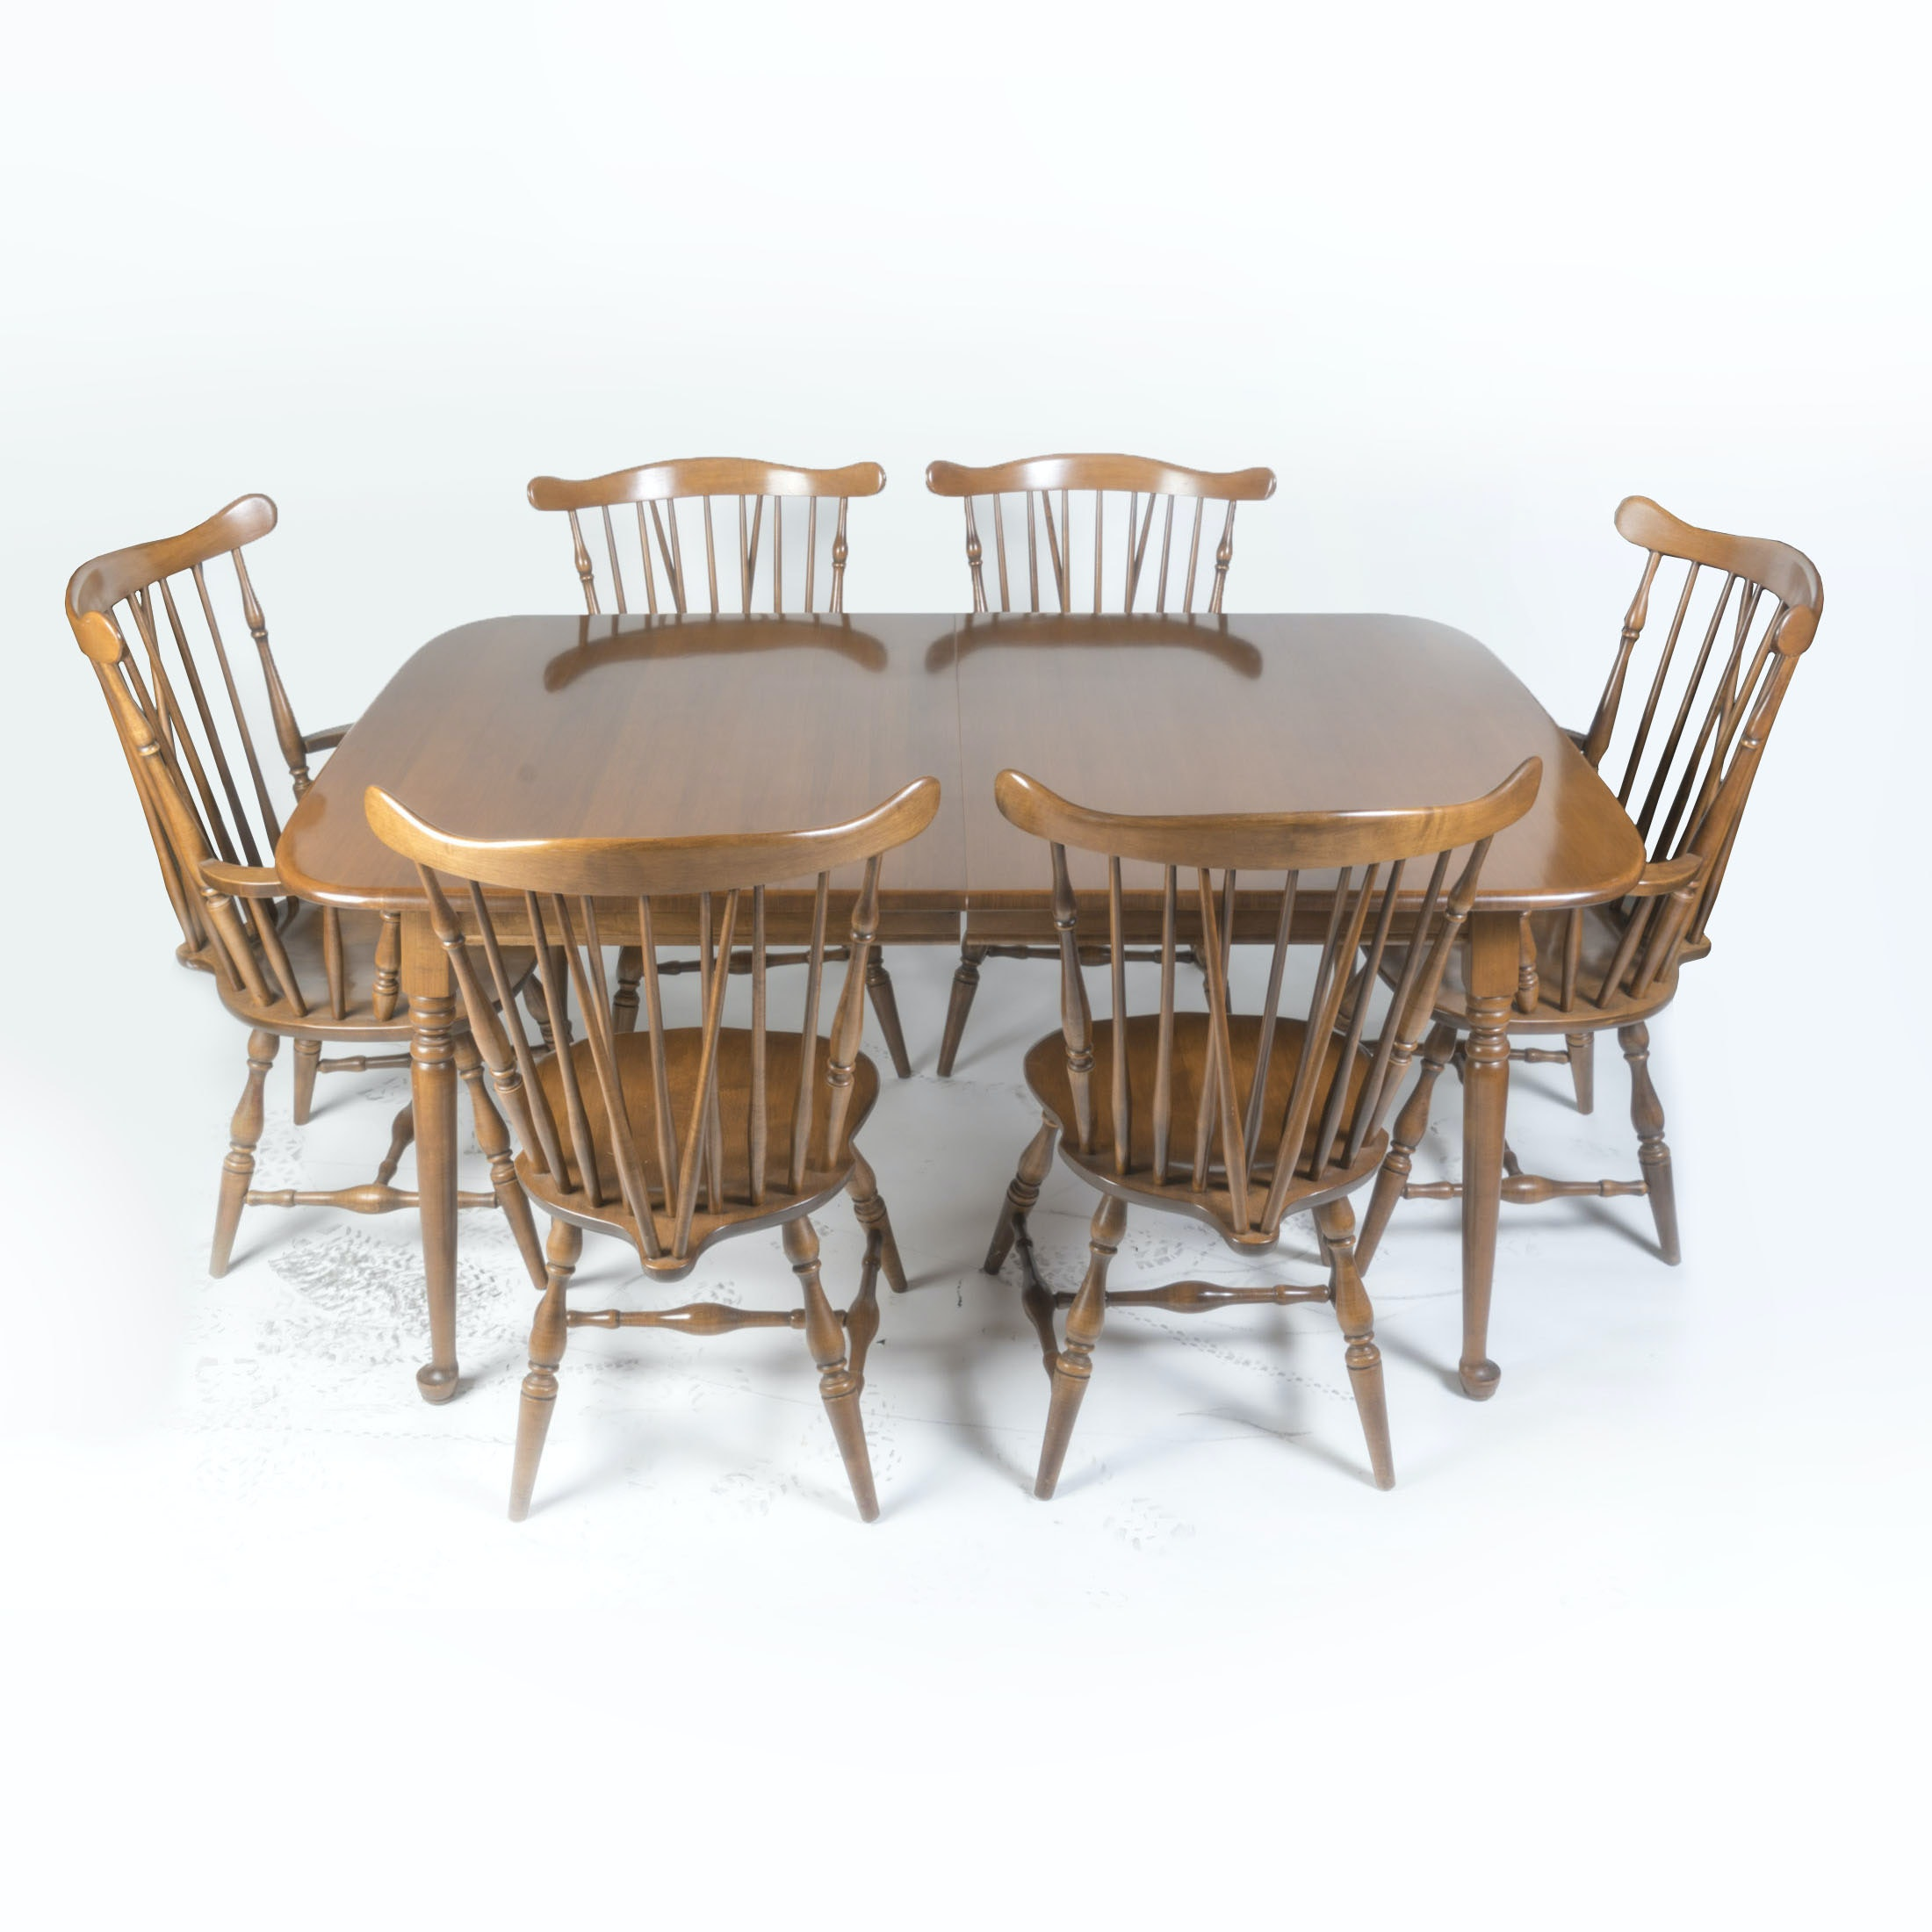 Maple Kitchen Table With Chair And Bench Ebth: Early American Style Maple Table And Six Chairs By Heywood